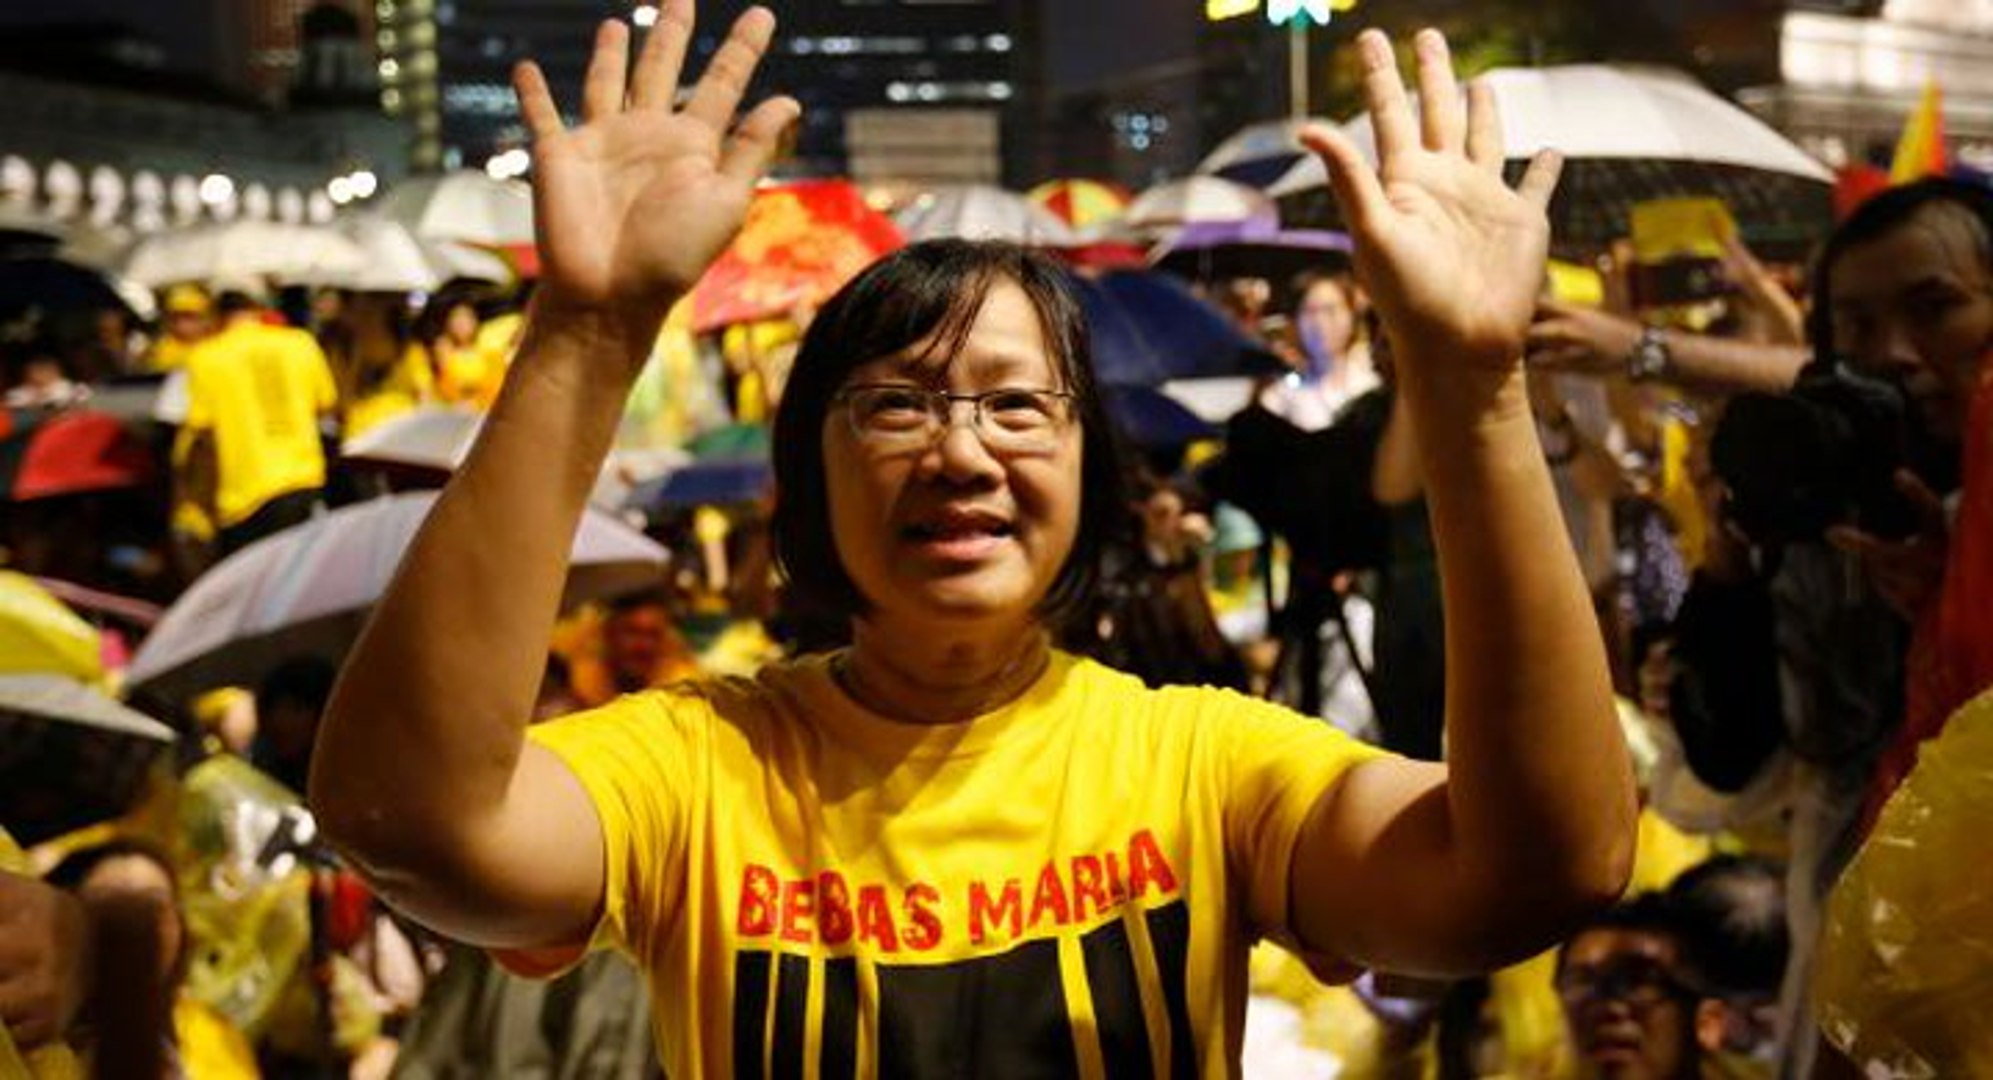 Maria: No link between Bersih and Soros